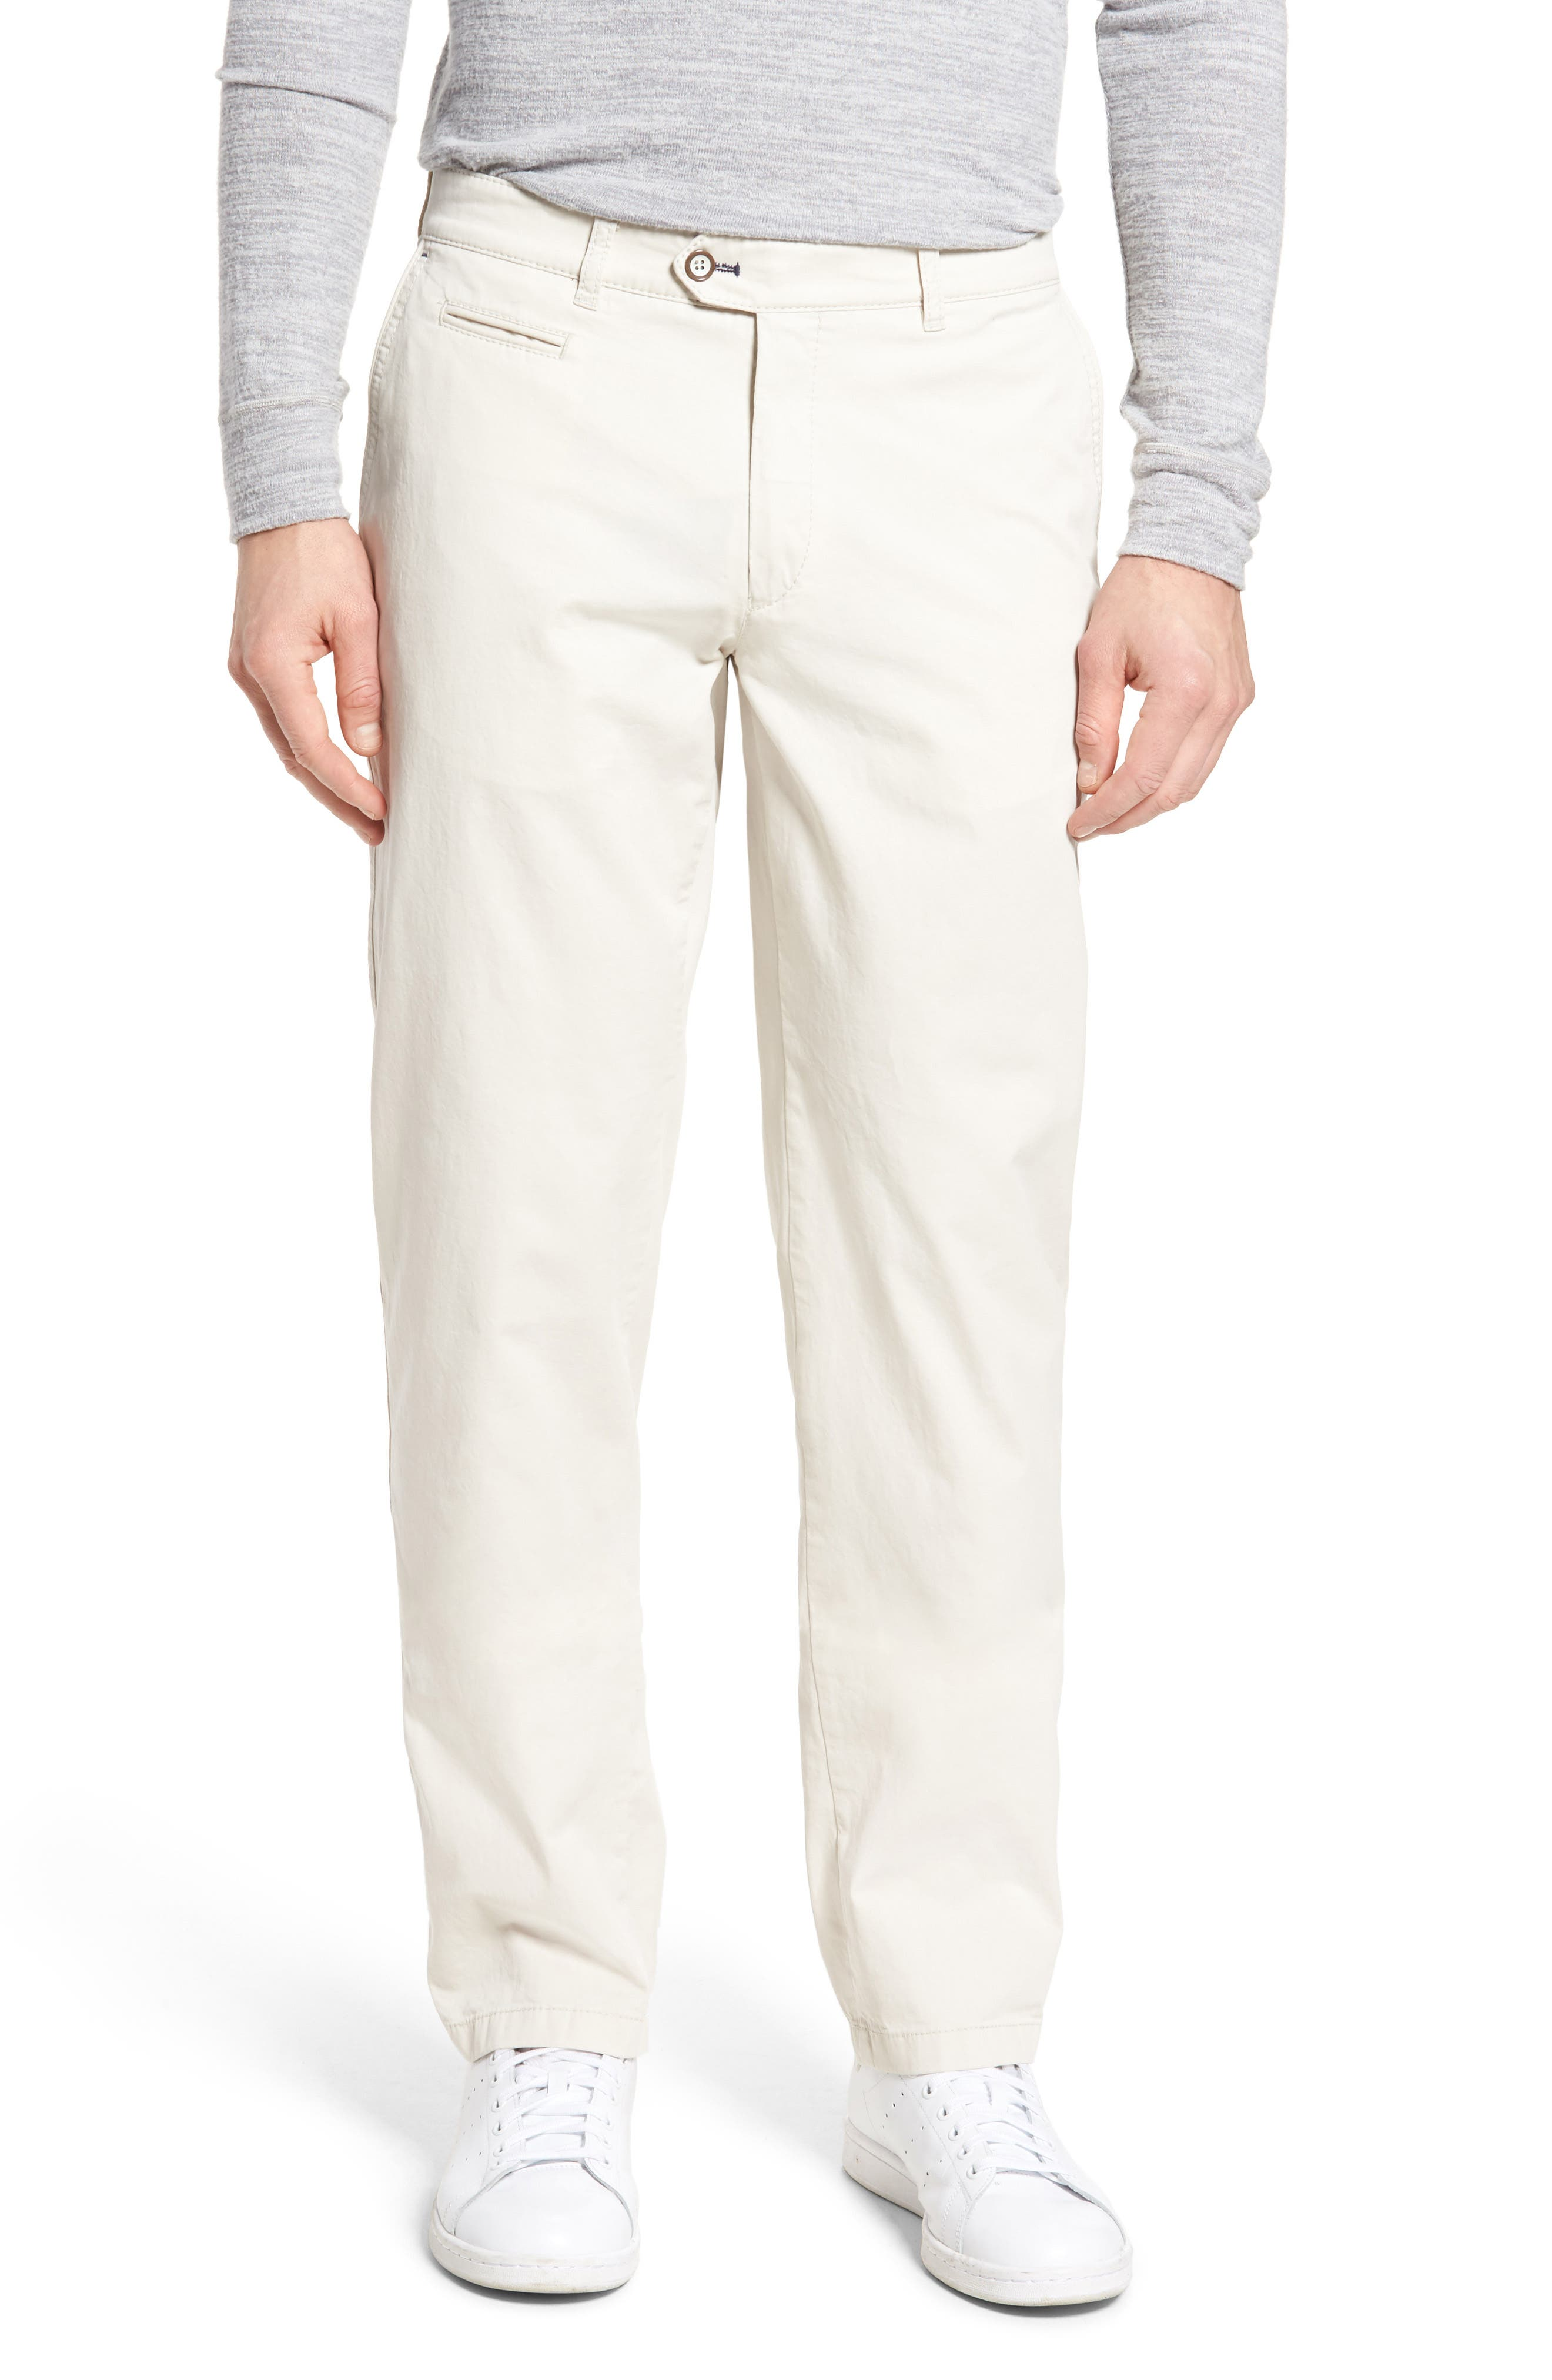 Everest Flat Front Chinos,                         Main,                         color,